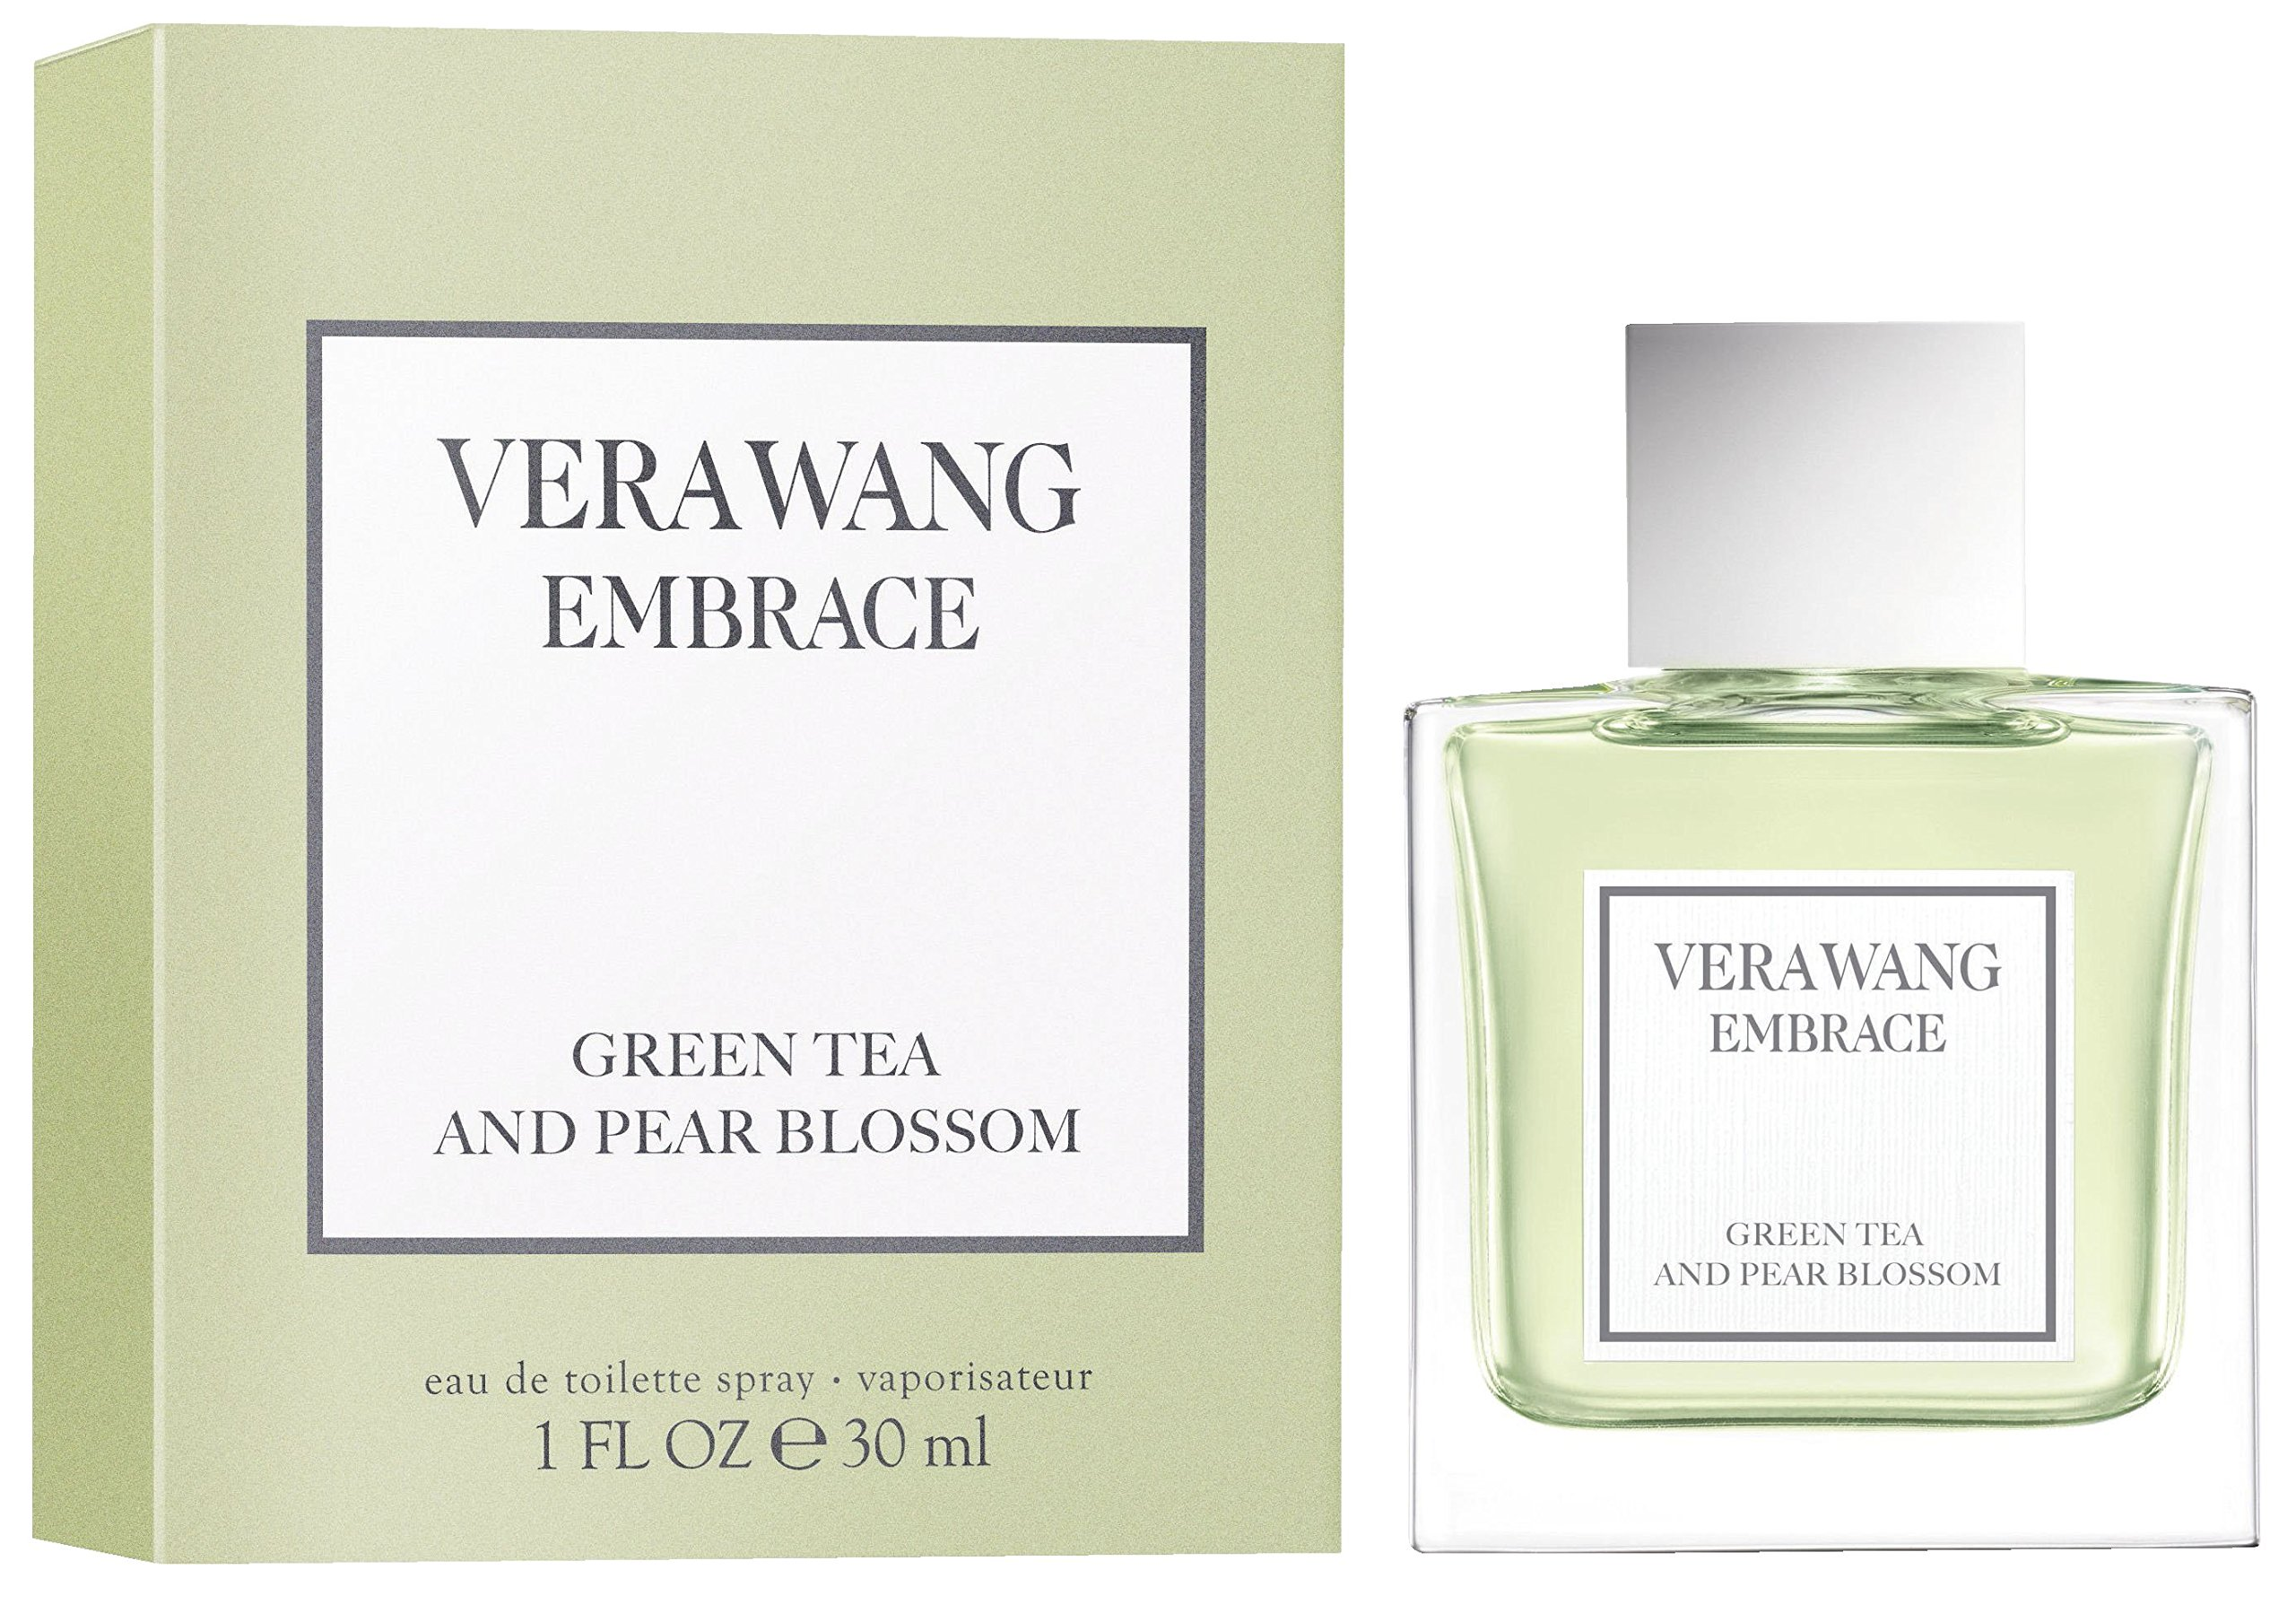 Vera Wang Embrace Eau de Toilette, Green Tea & Pear Blossom, 1 Fluid Ounce